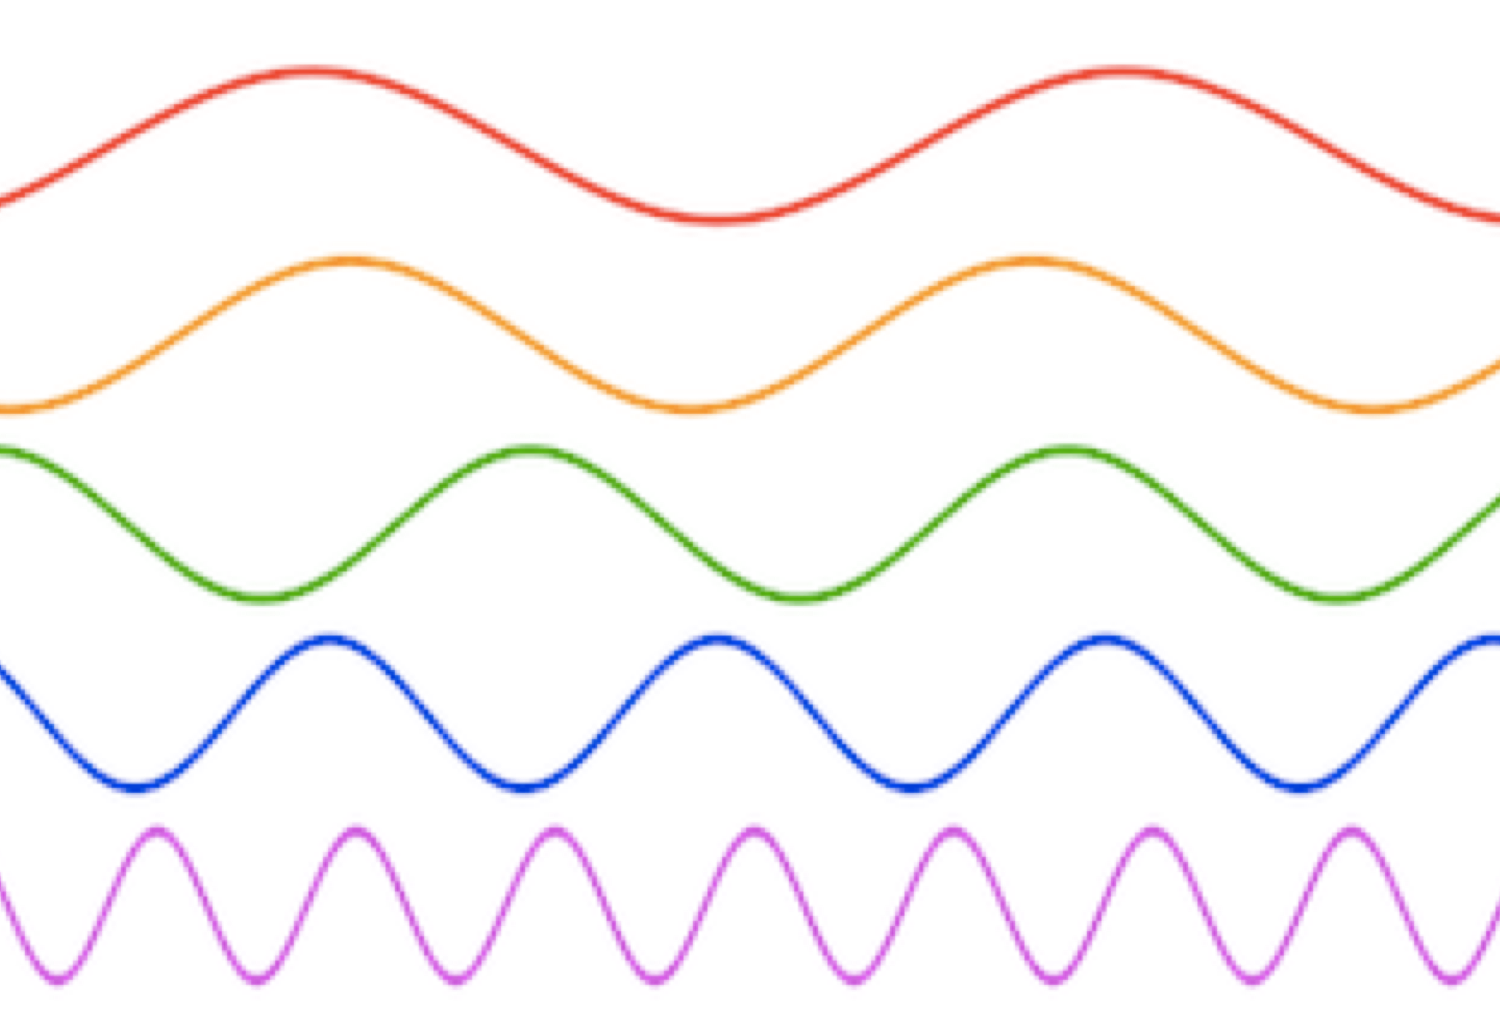 brain-wave-sine-wave.png